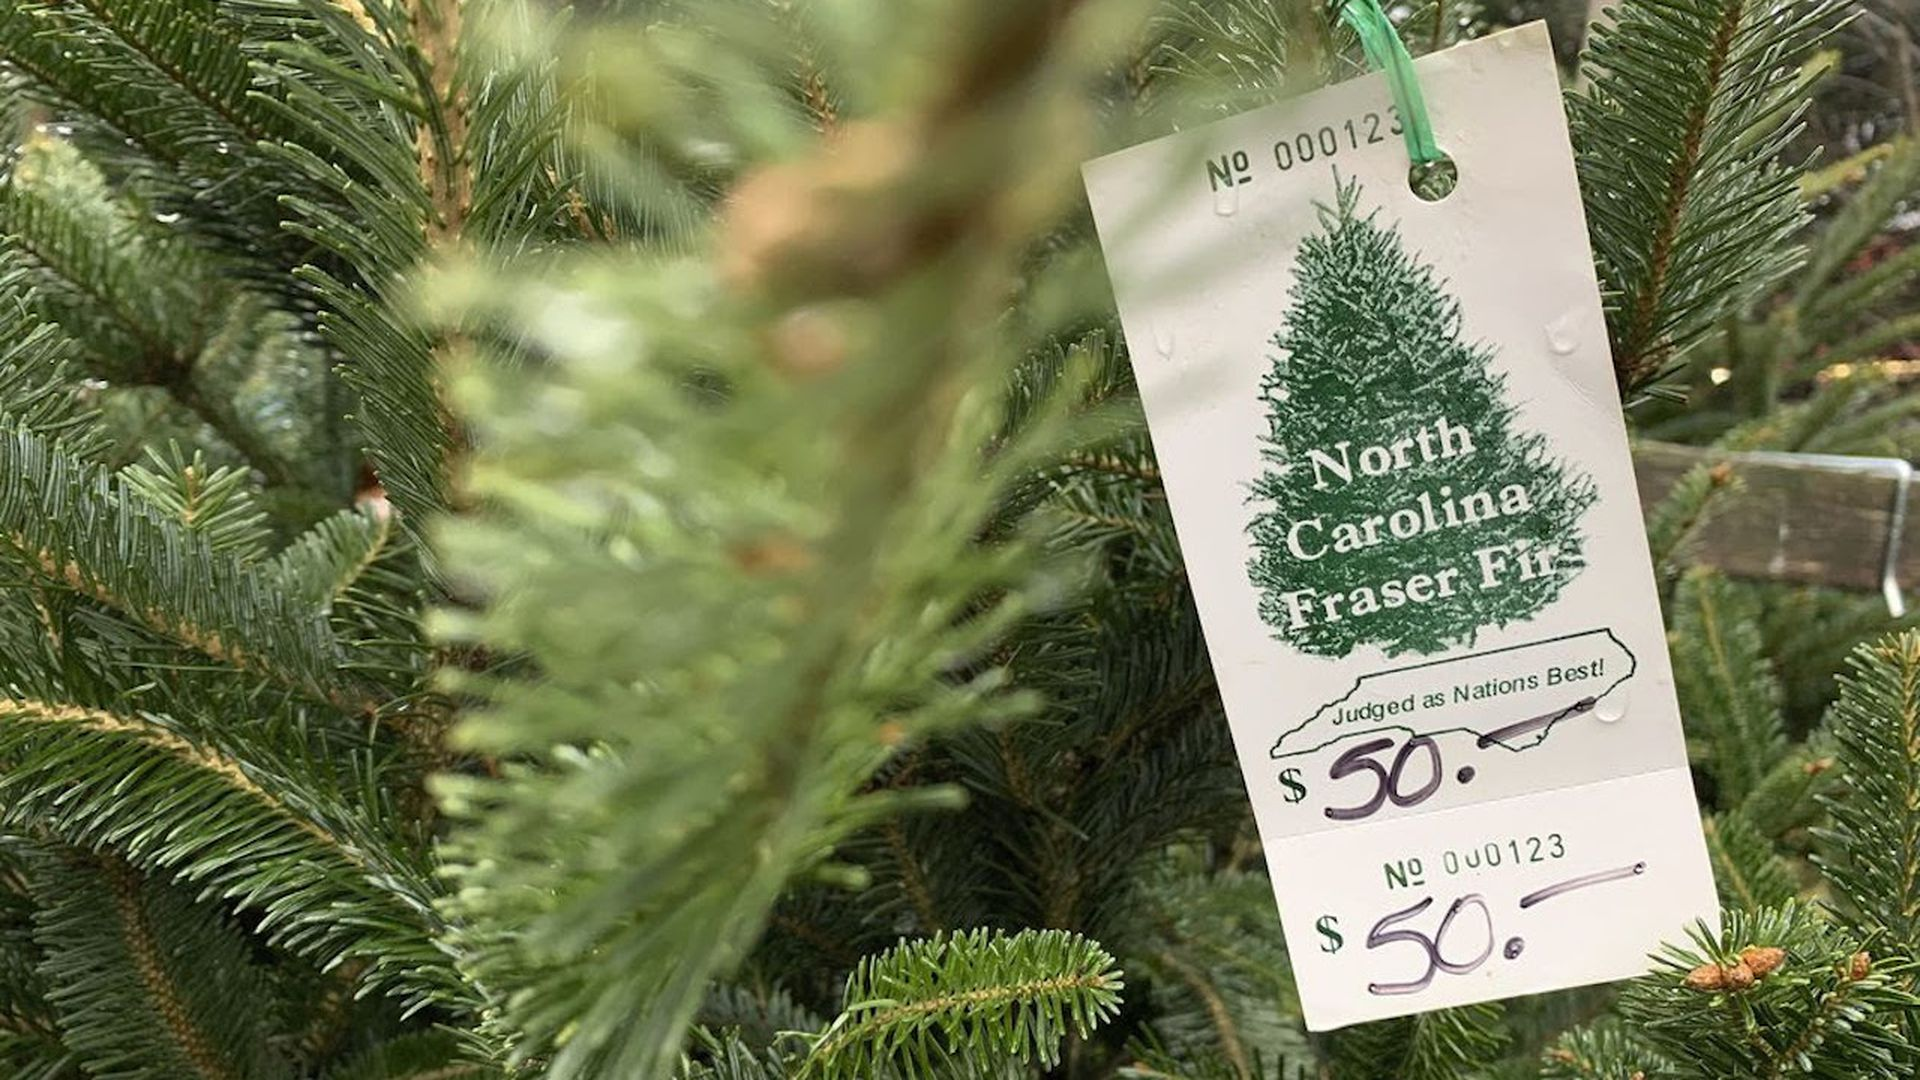 Christmas tree with a price tag on it